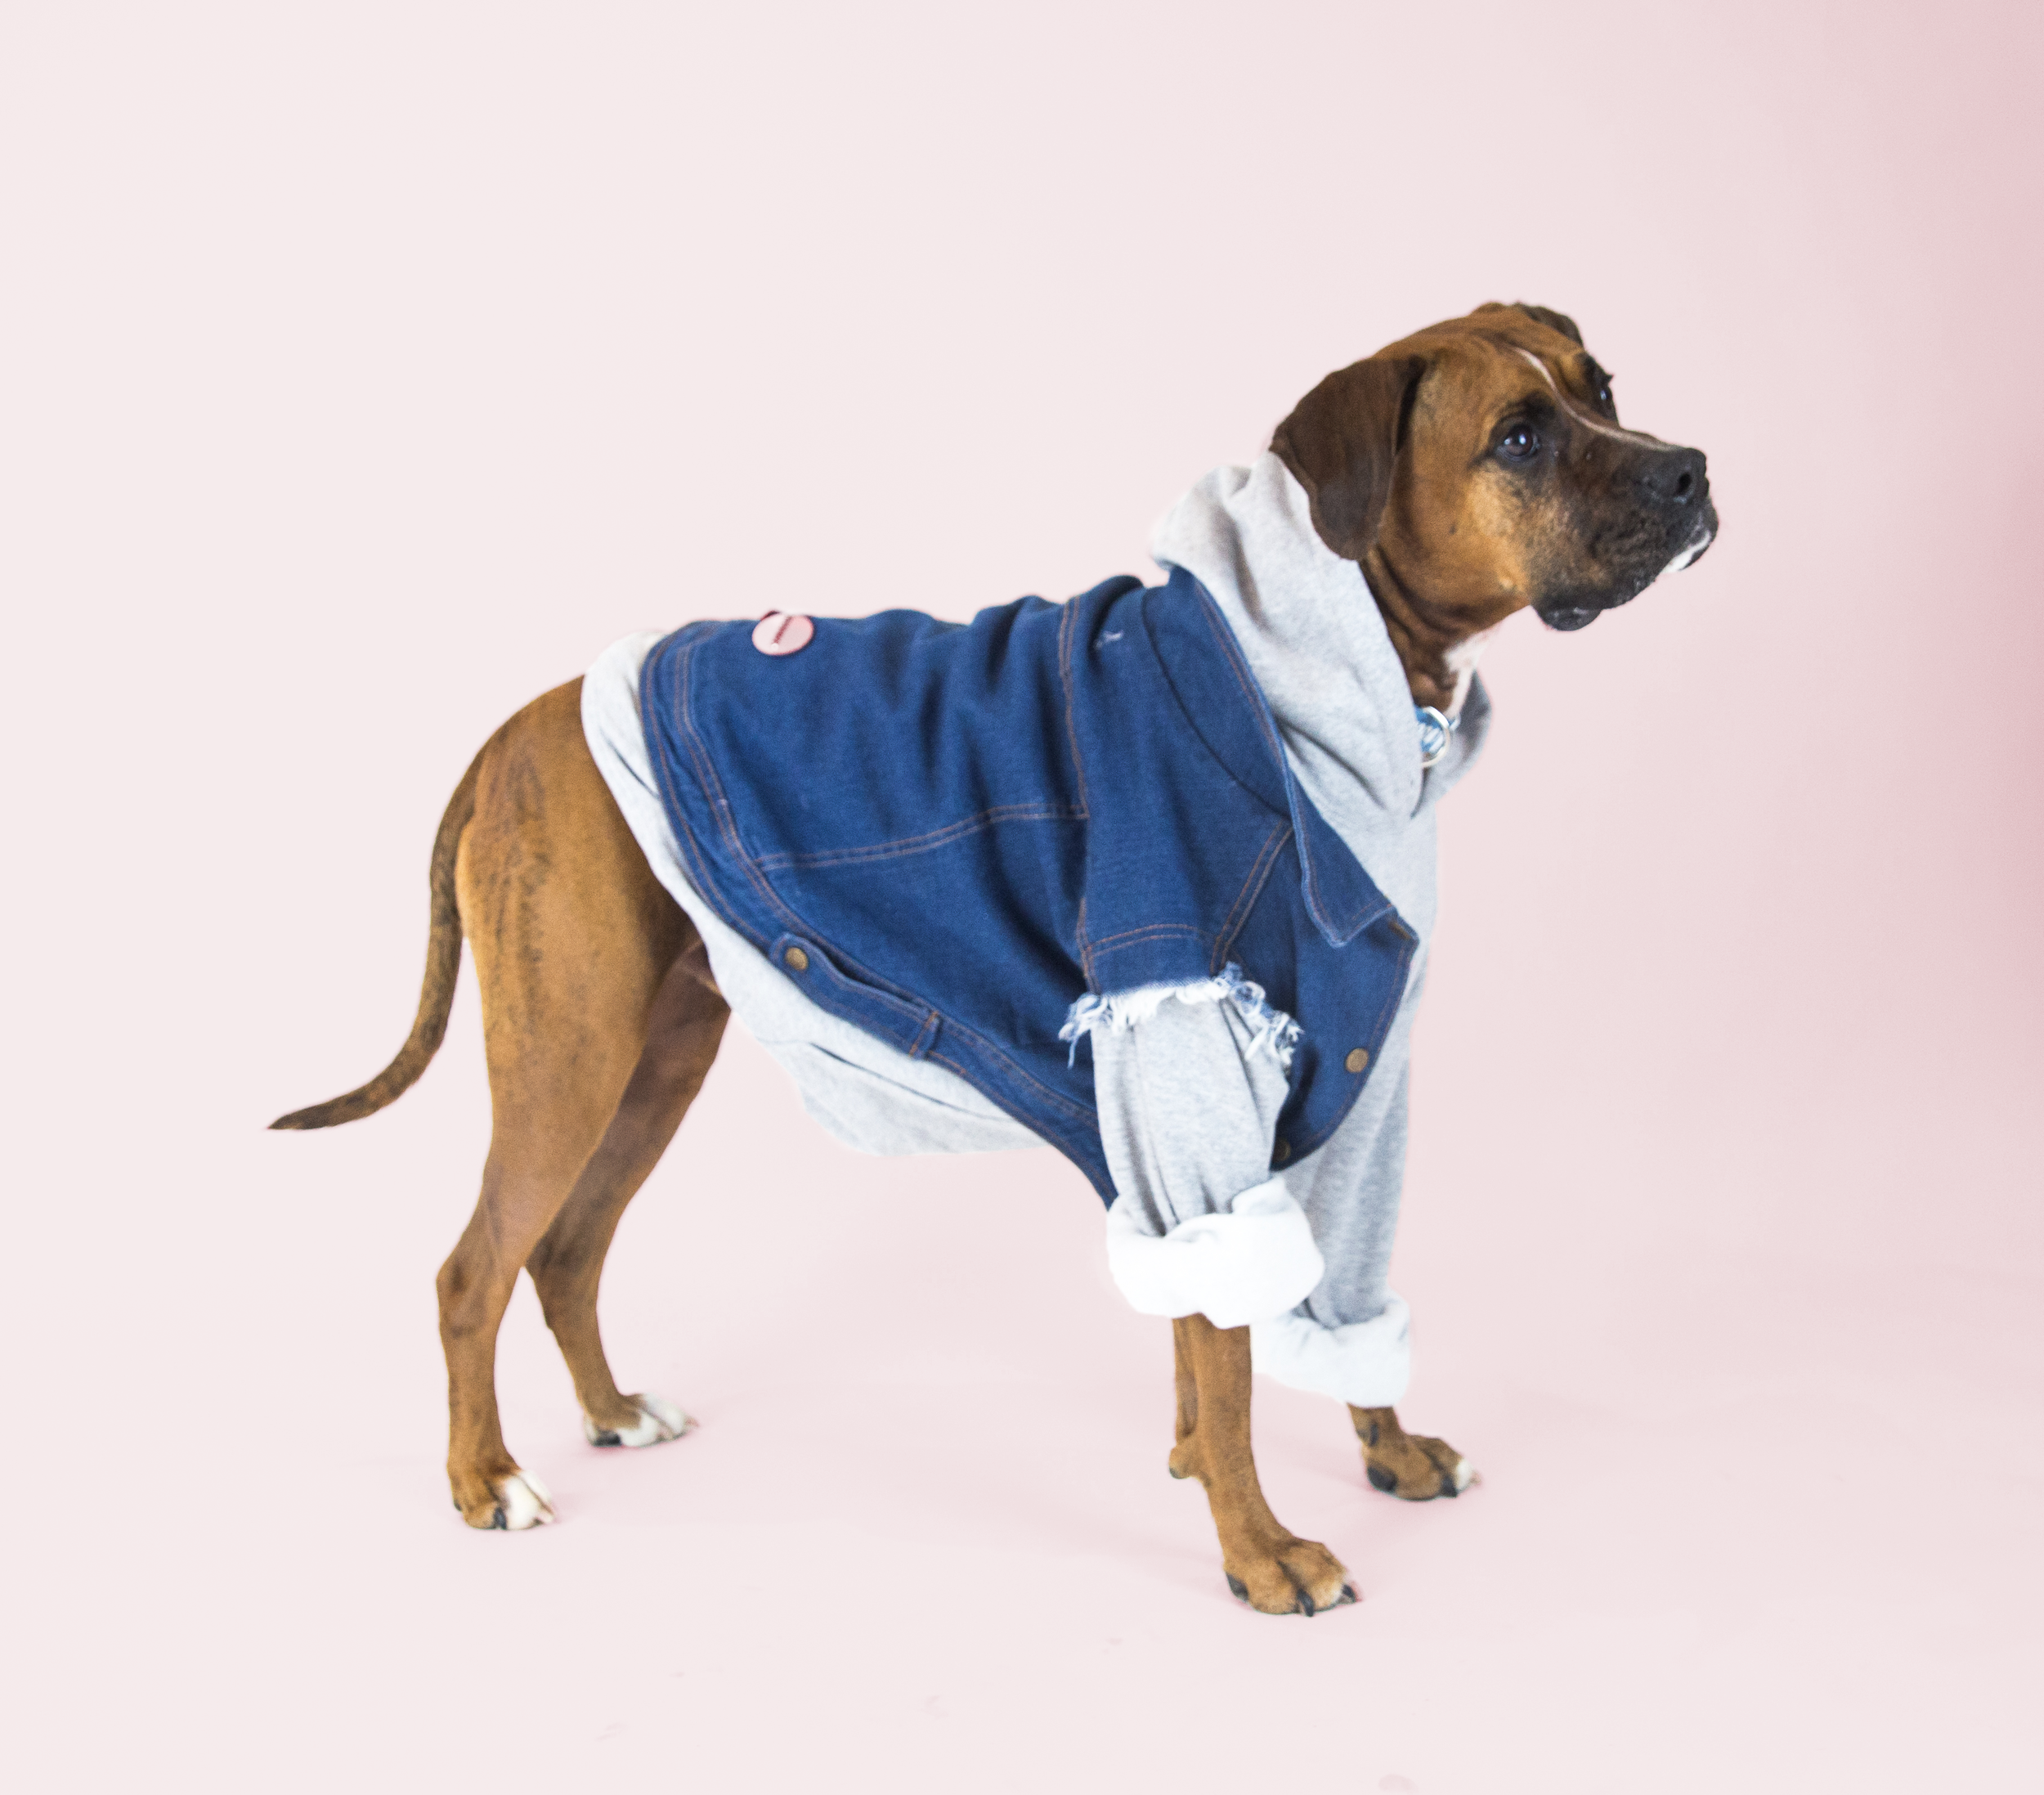 Favourite Goodboy Swag - A fan favourite, the Pethaus Raw Denim Vest. Bruno looks fab in just about anything. But right now he's really digging the denim look, especially layered with the classic Goodboy Grey Hoodie.